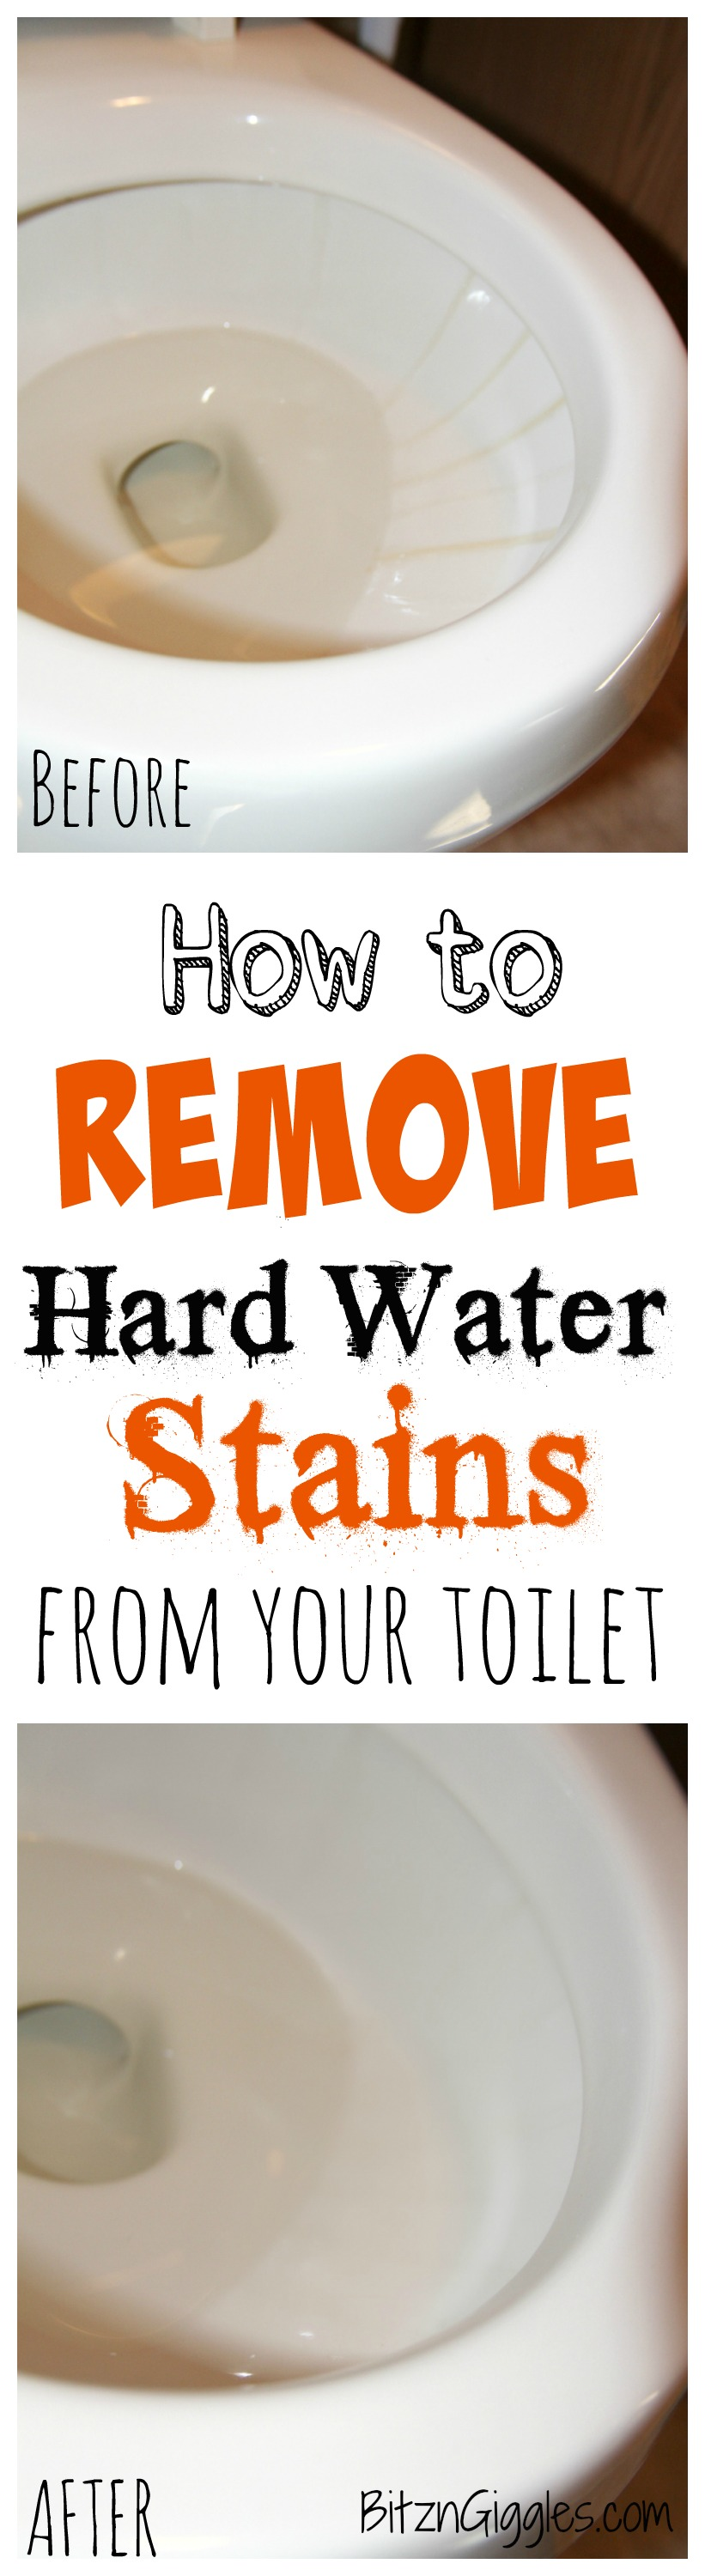 to Remove Hard Water Stains From Your Toilet